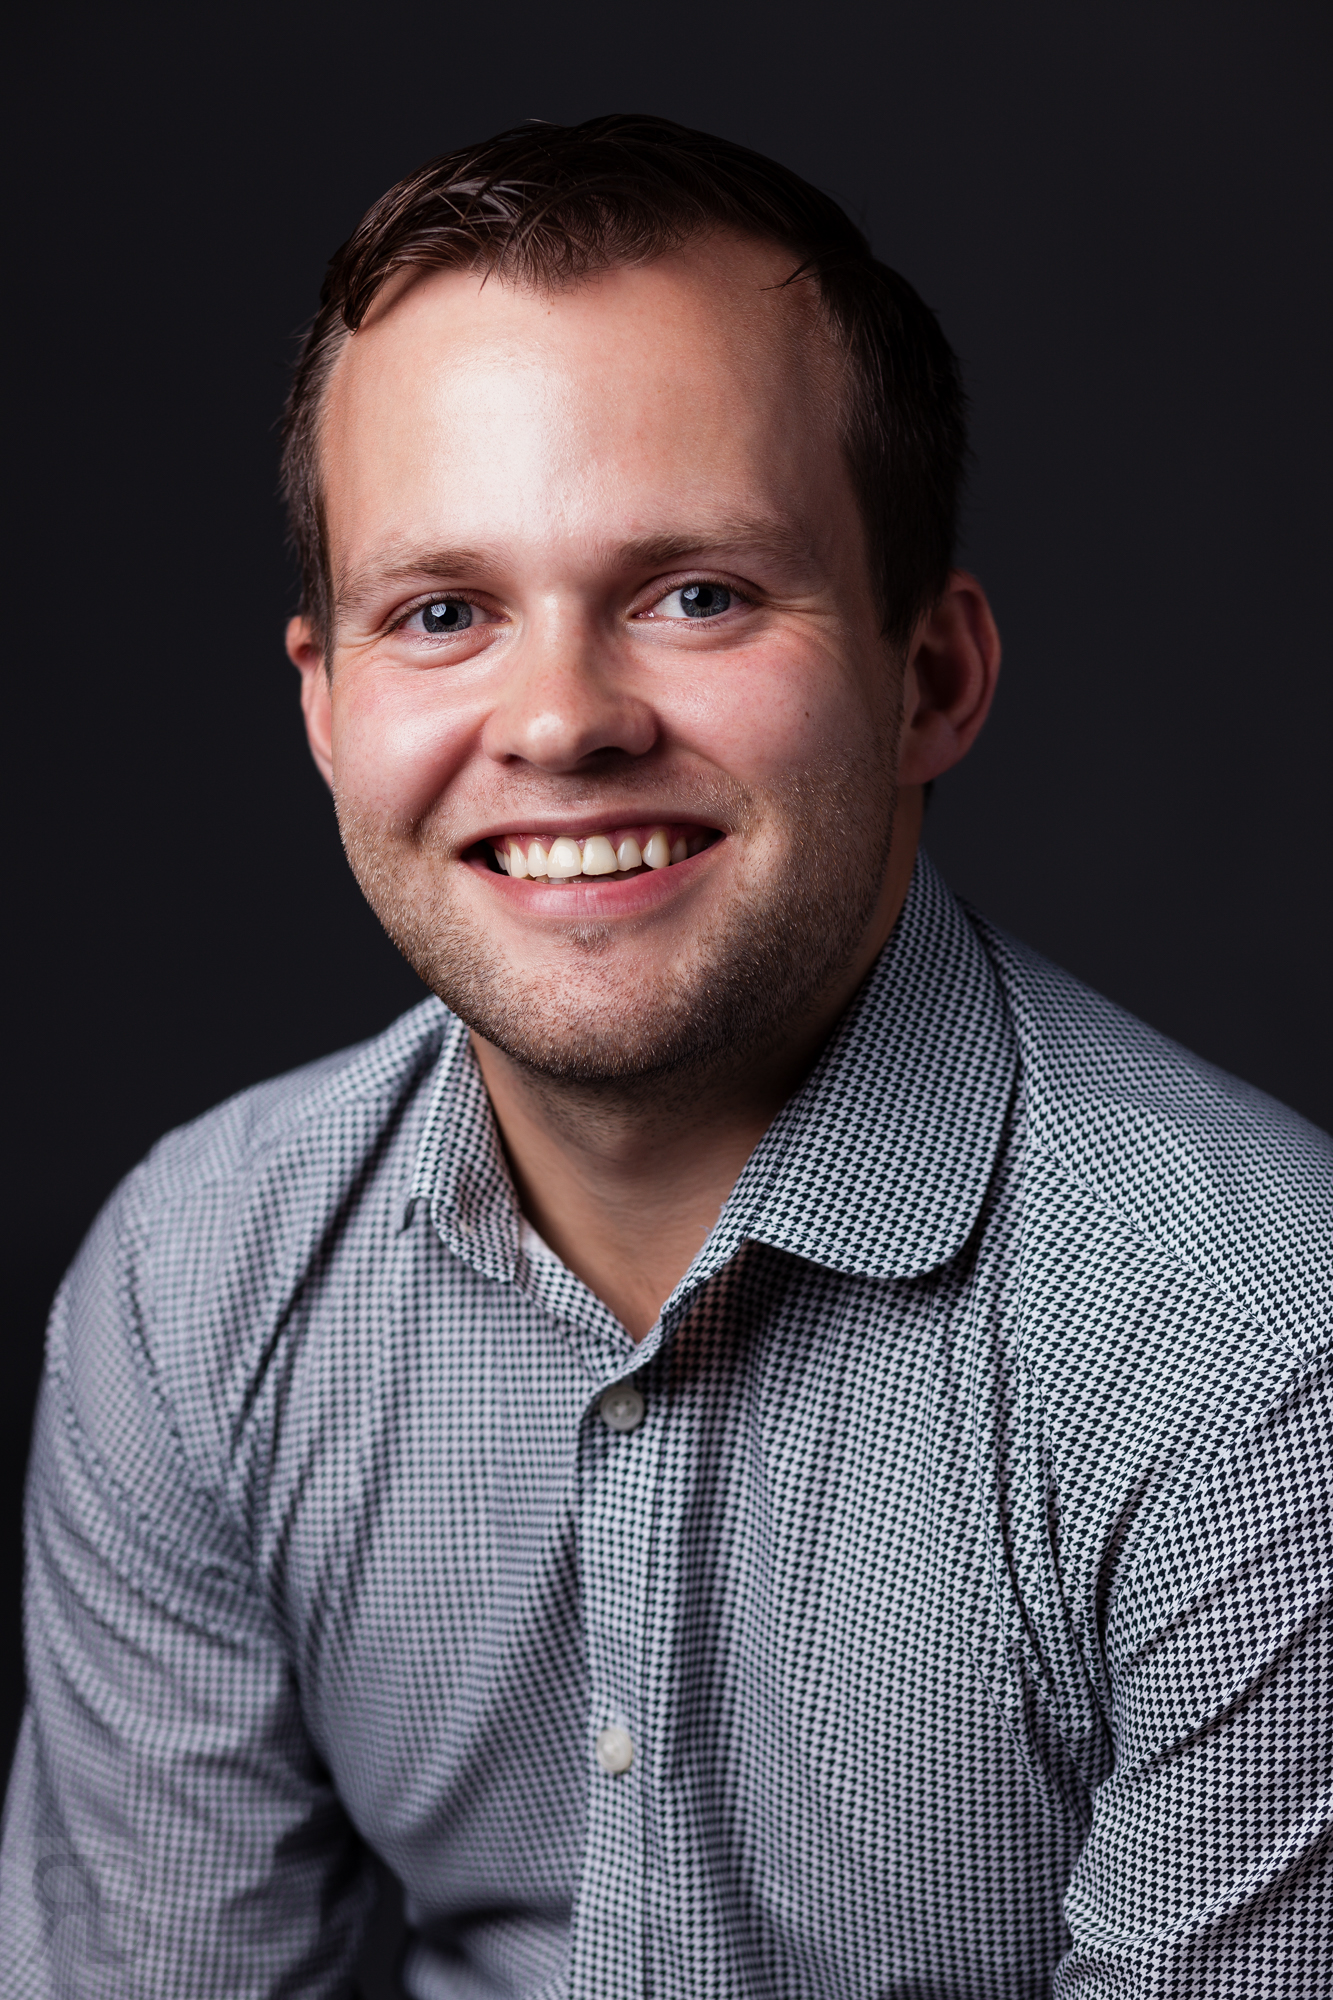 Ben Jones - RM Education LTD - Head Shots